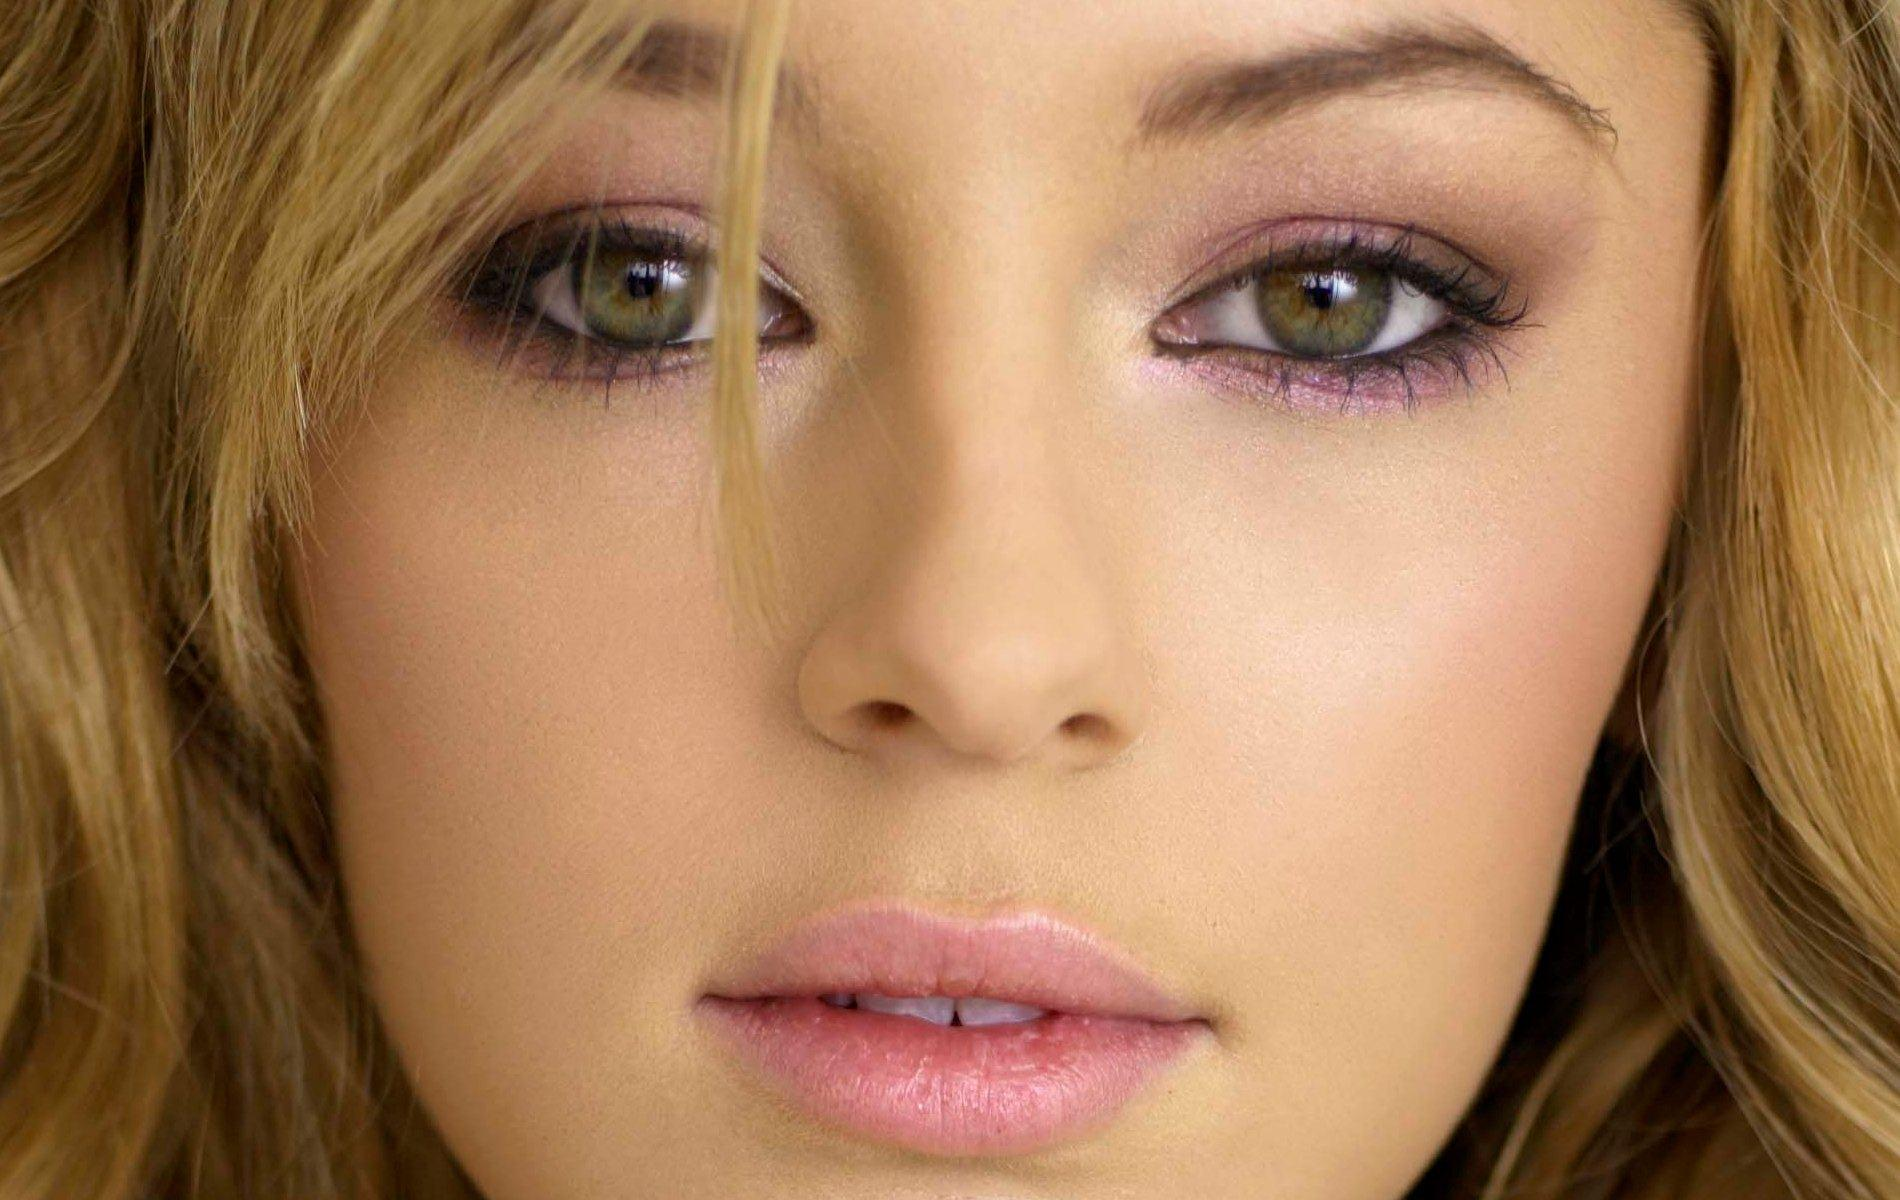 keeley hazell wallpaper 13 - photo #26